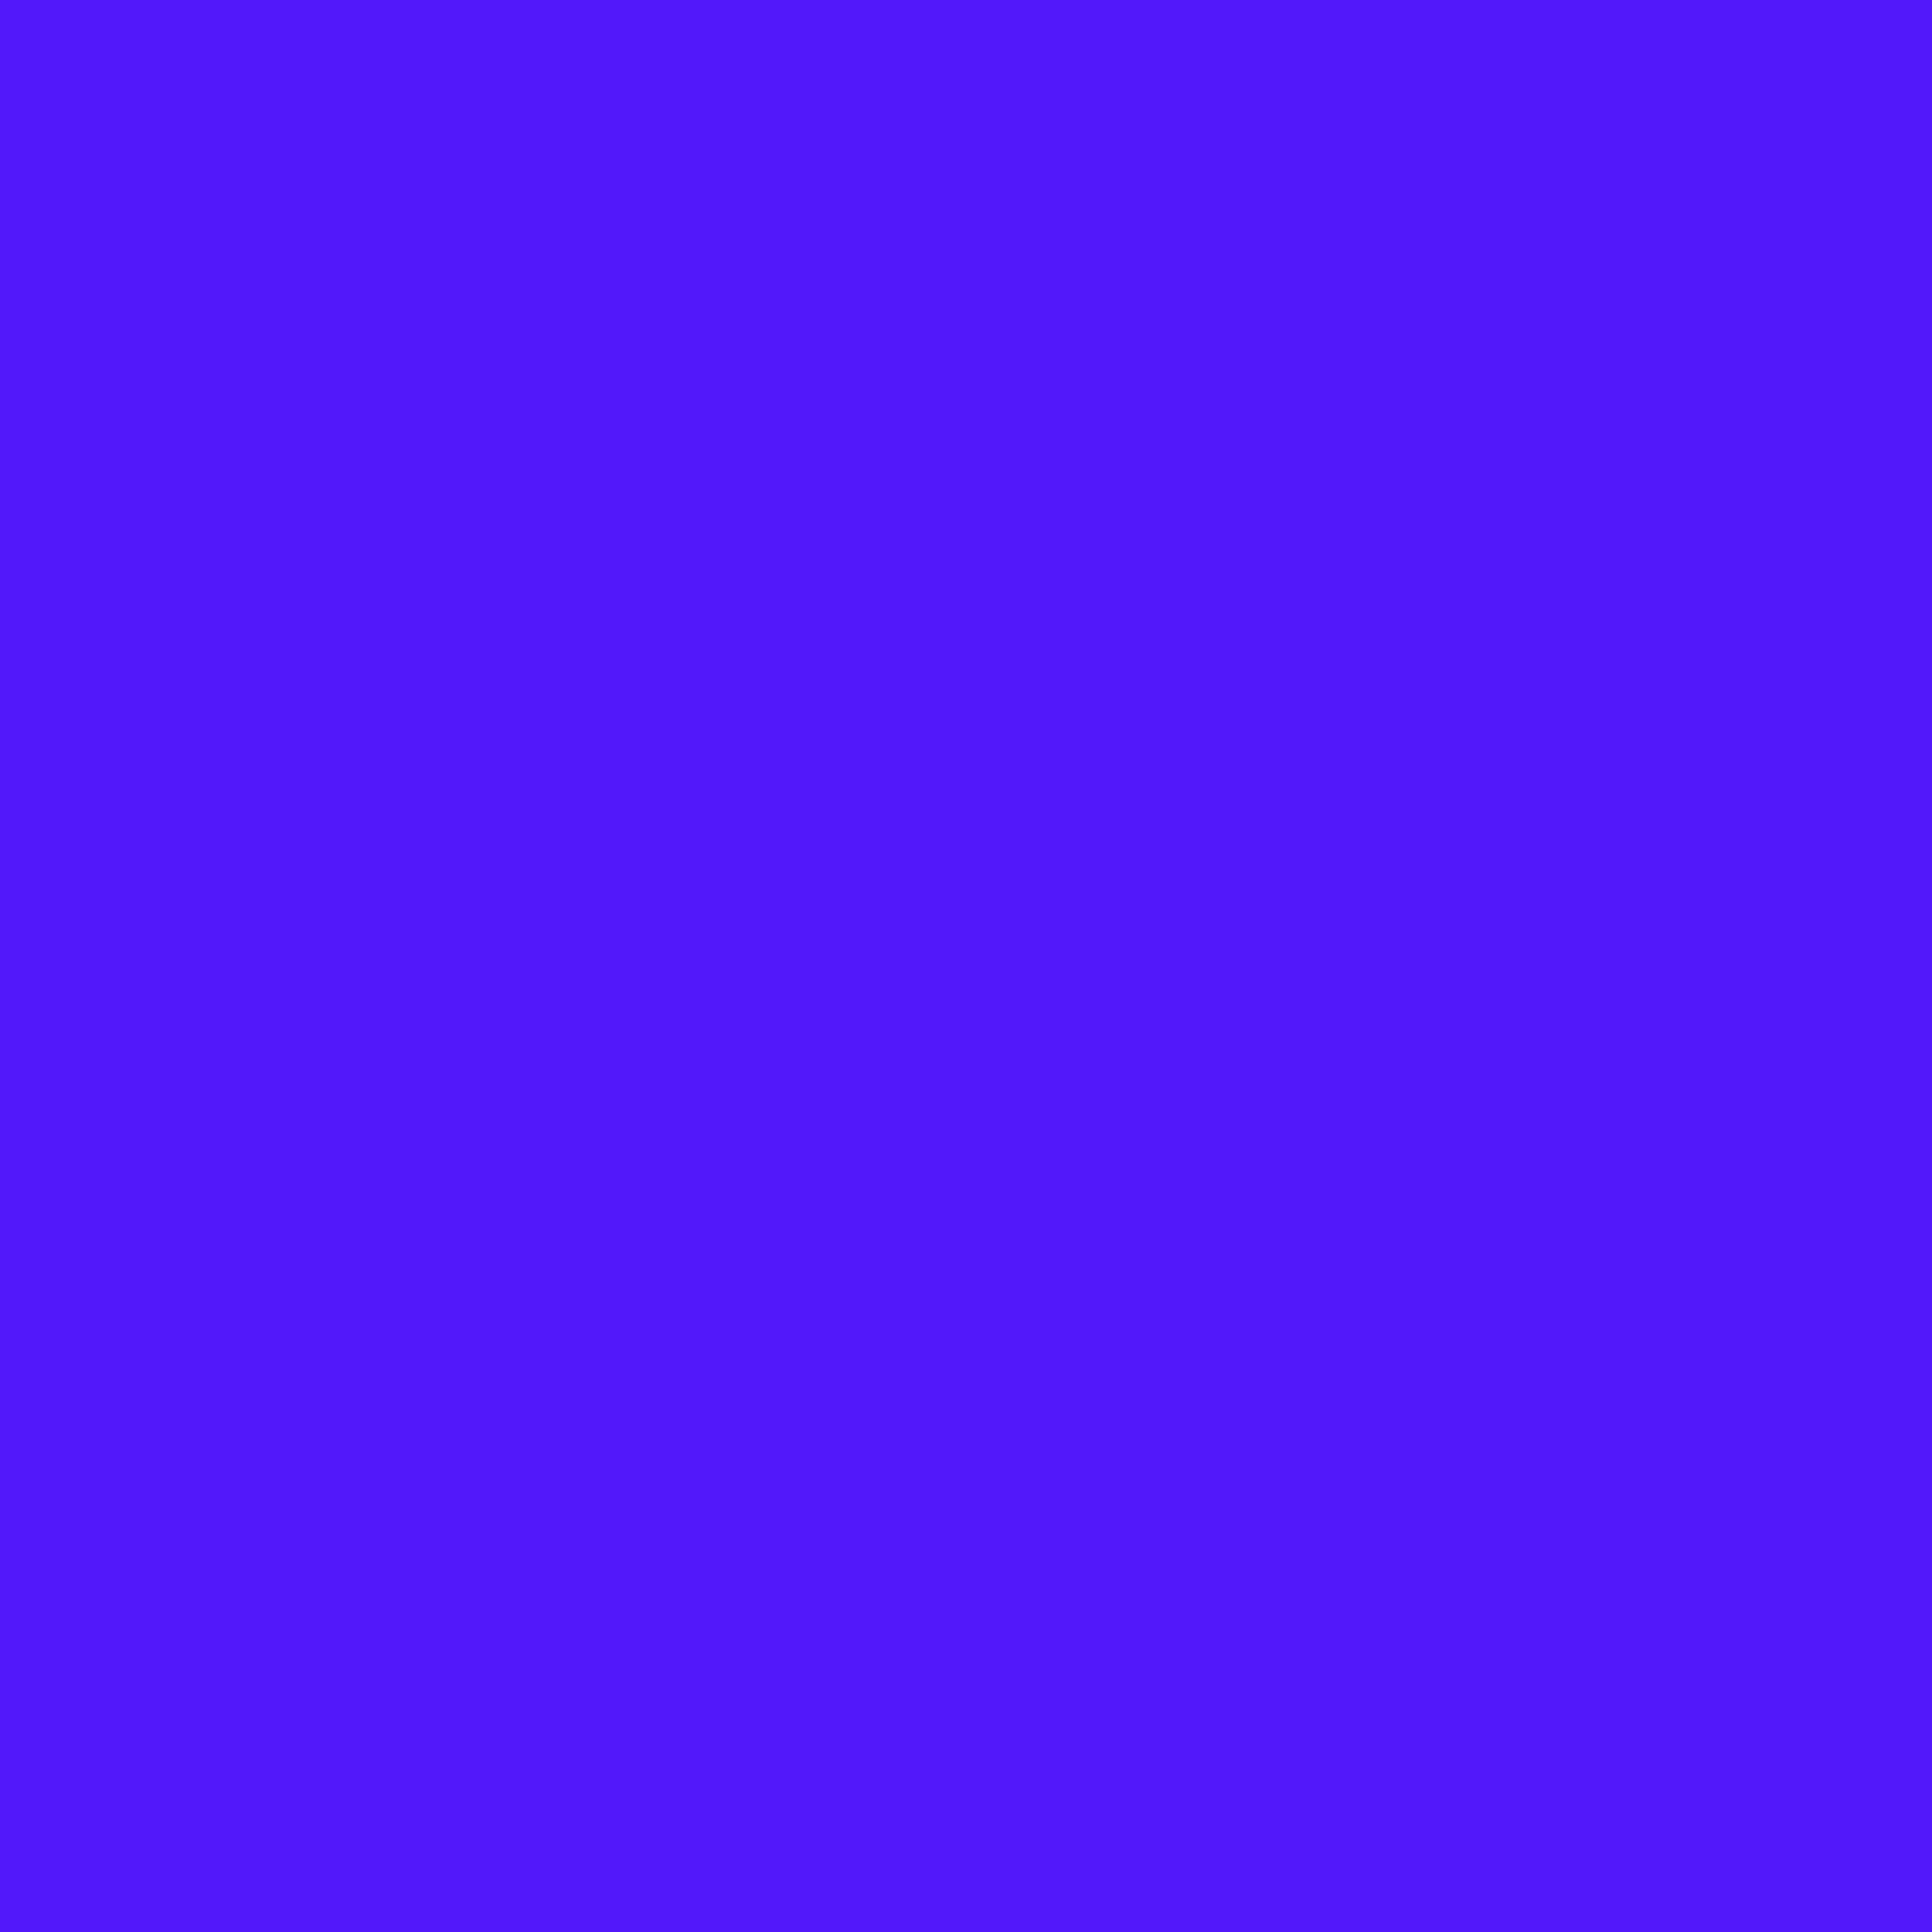 2732x2732 Han Purple Solid Color Background